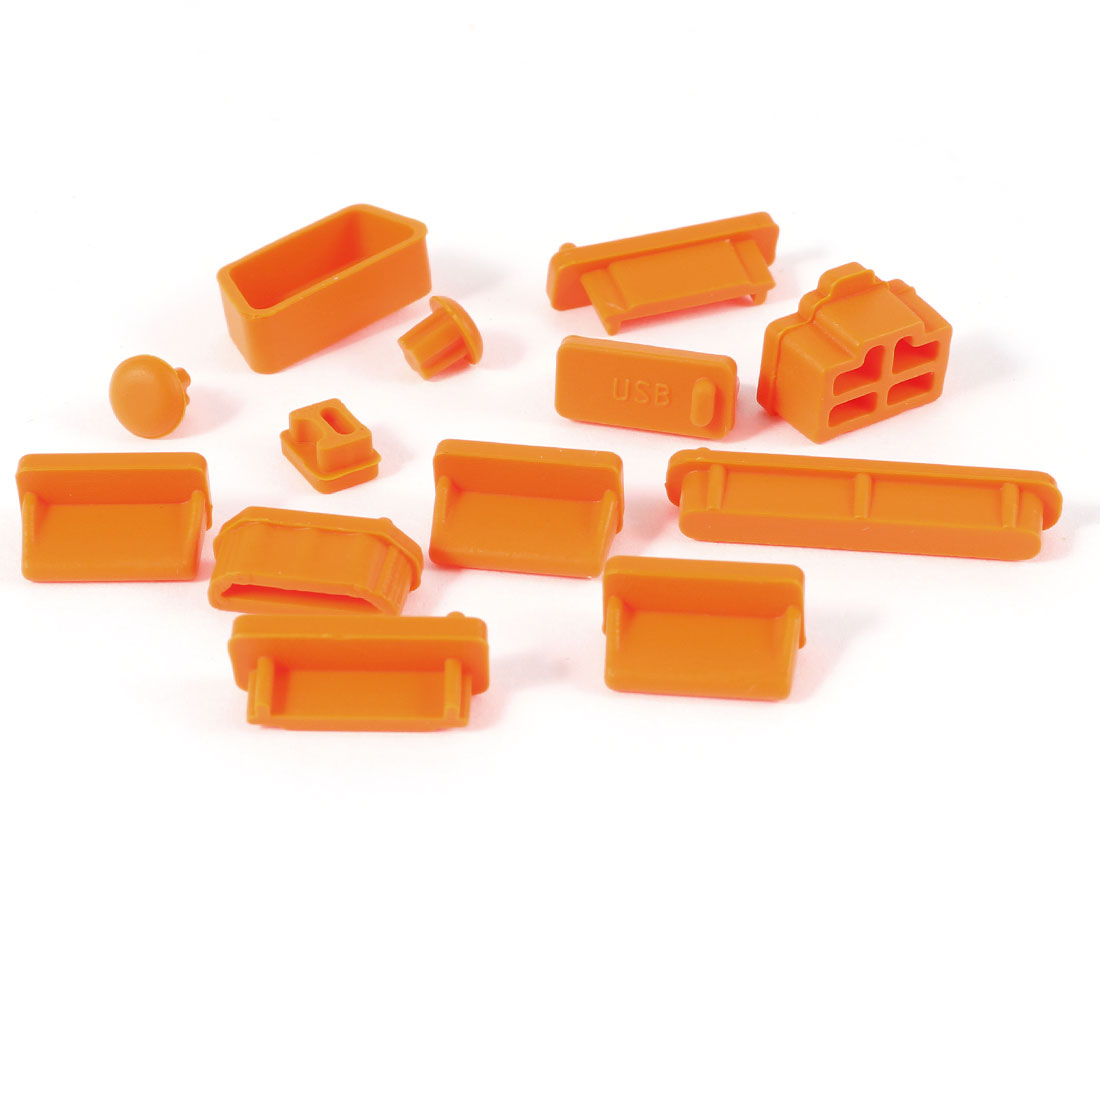 12pcs Silicone Ports Protector Cover Anti-Dust Connector Stopper Orange for Laptop